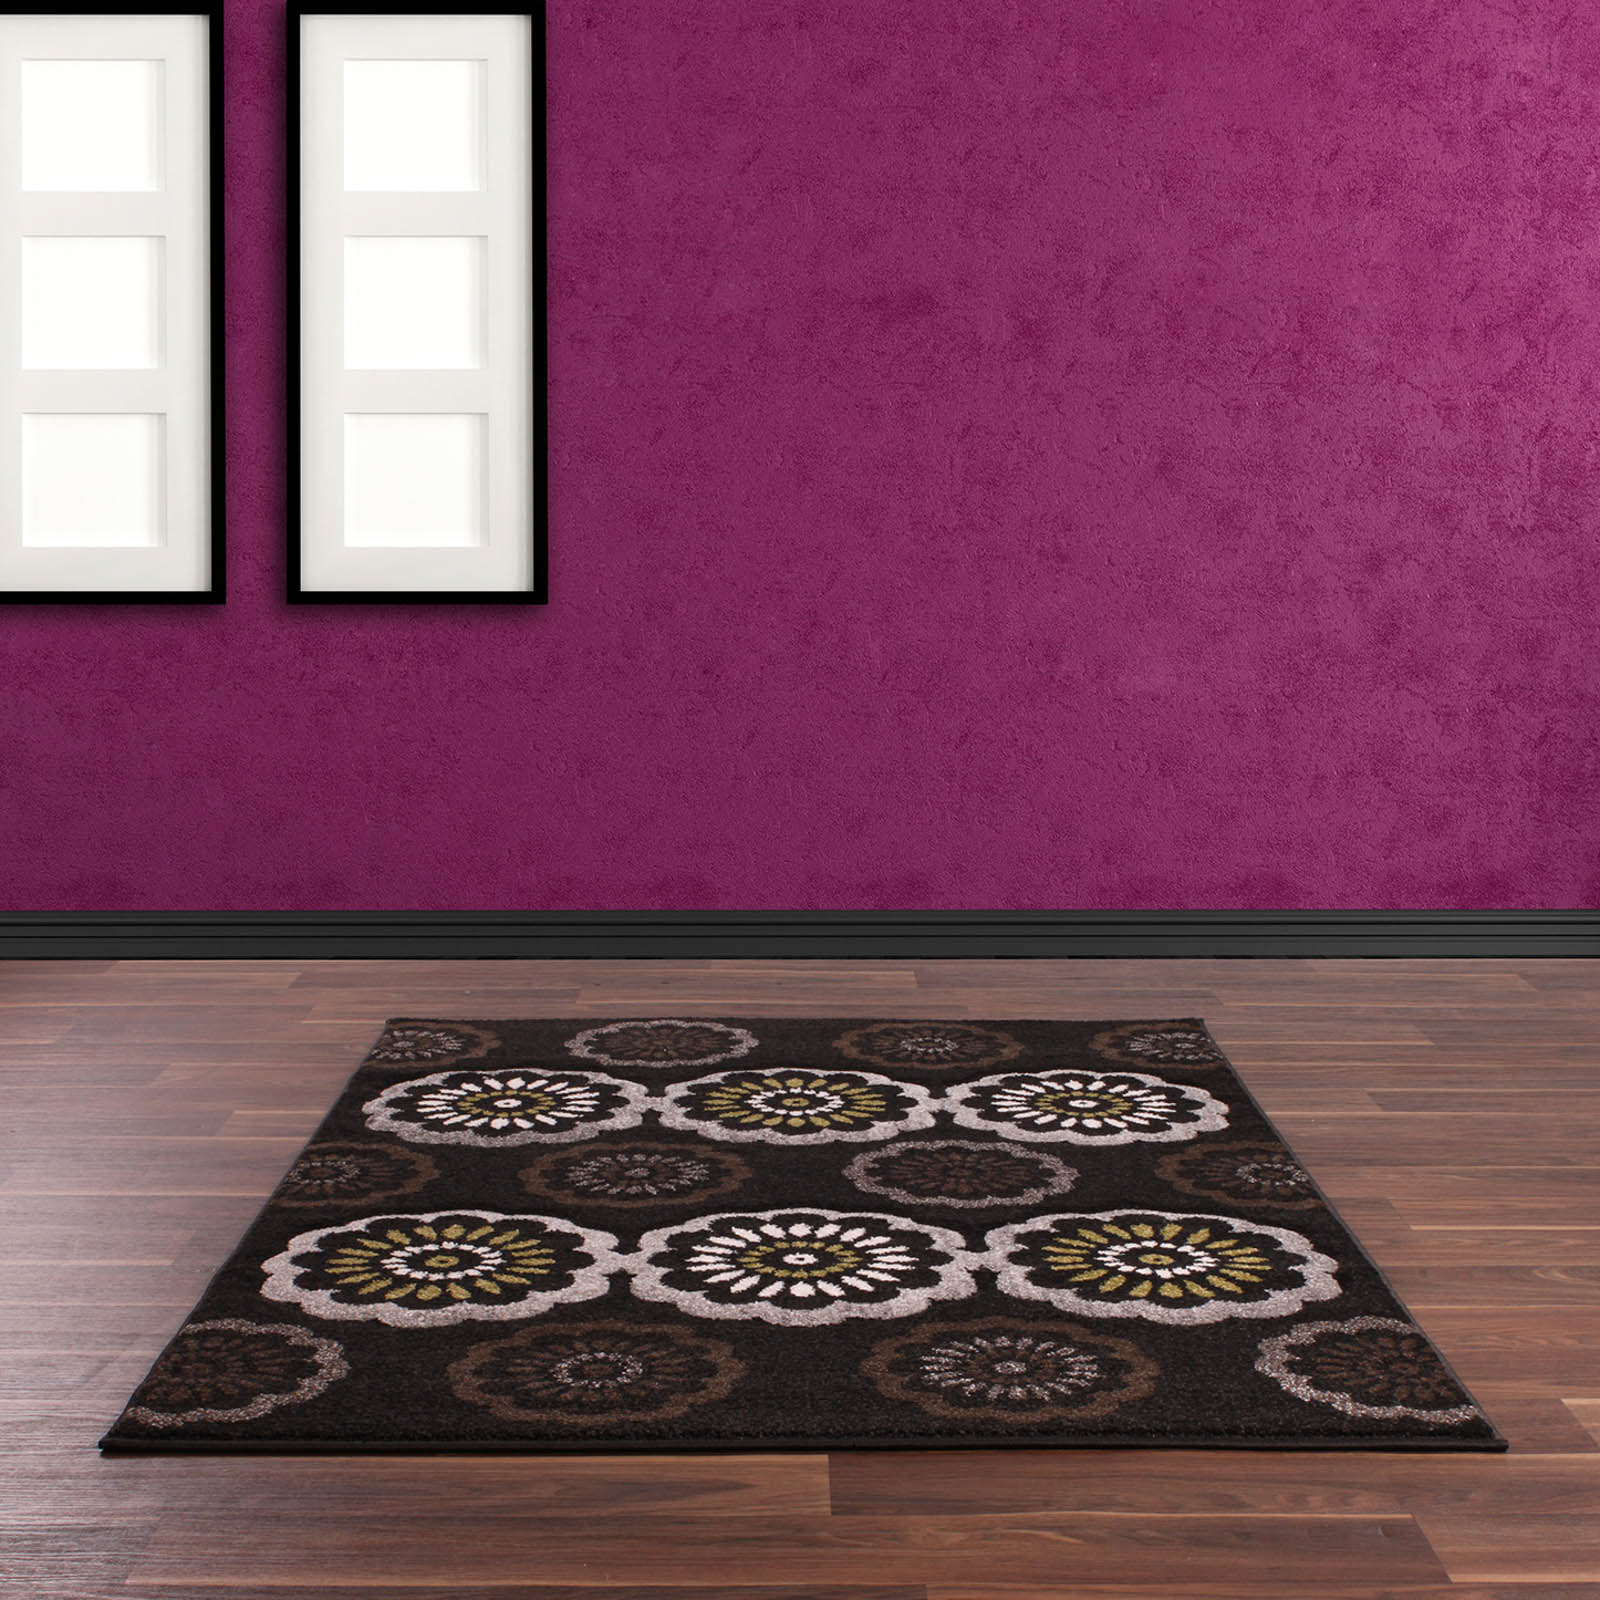 Bali Rugs 075 in Anthracite